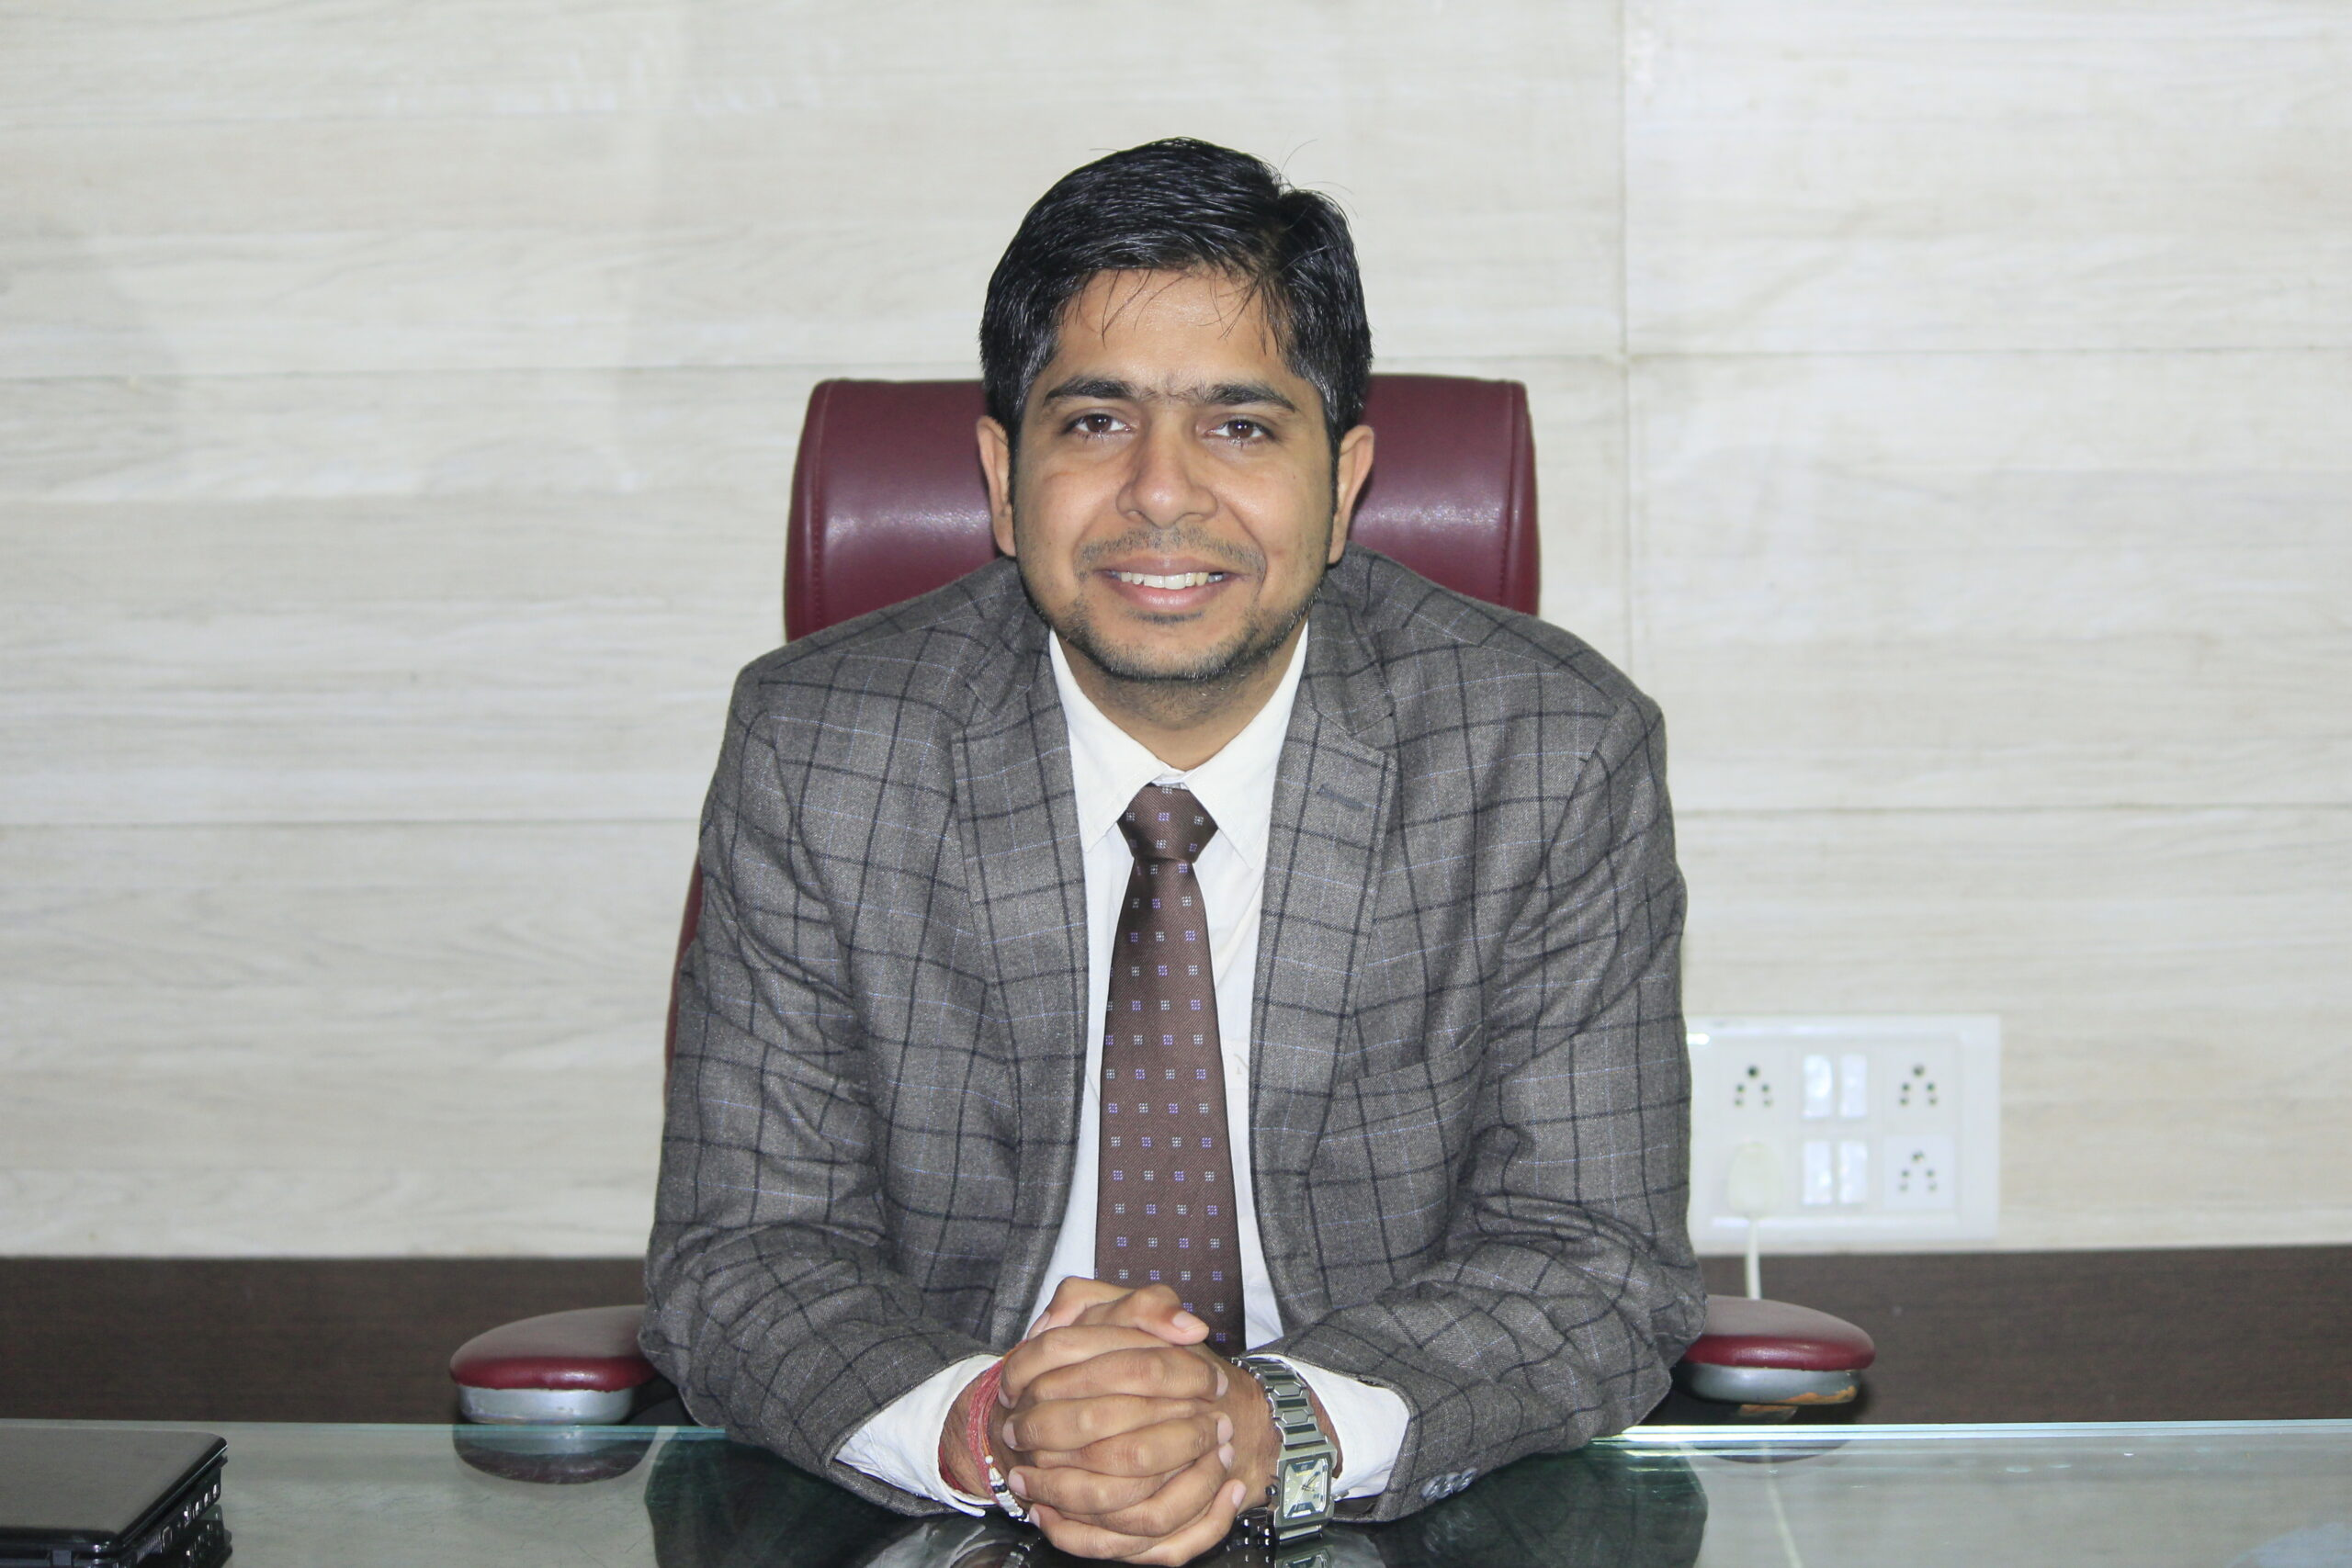 You are currently viewing TERii Kurukshetra collaborates with edX to offer Harvard Certifications to TERiians Skills will supersede degrees in time to come: Dr. Sagar Gulati Ms. Parul Chutani, Assistant Professor will be the coordinator for TERii-edX partnership